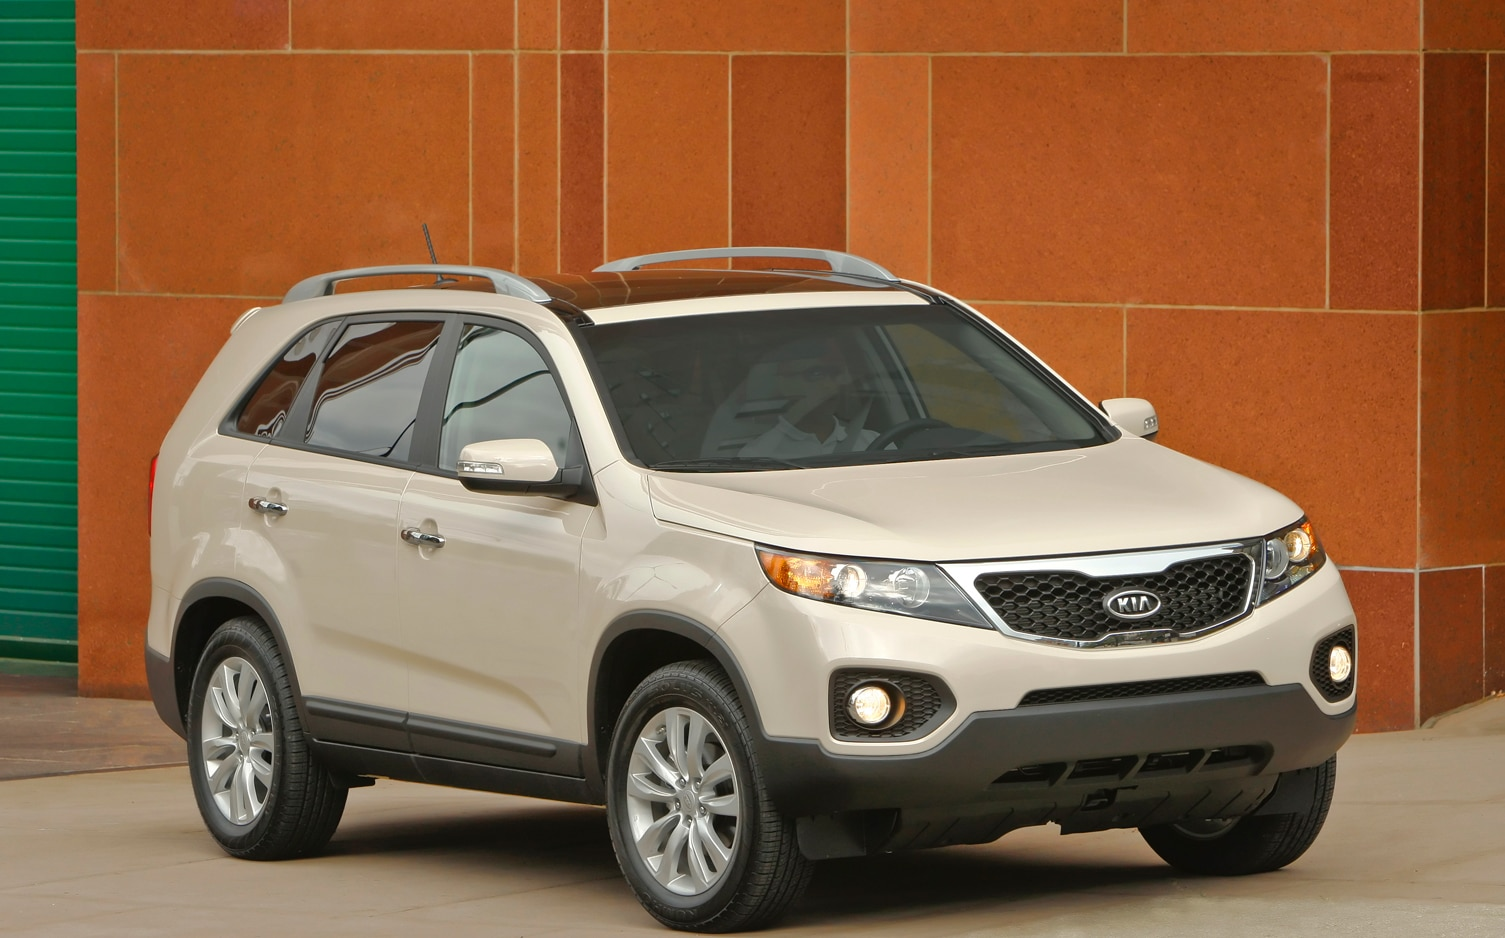 2012 Kia Sorento Front Right Side View 2